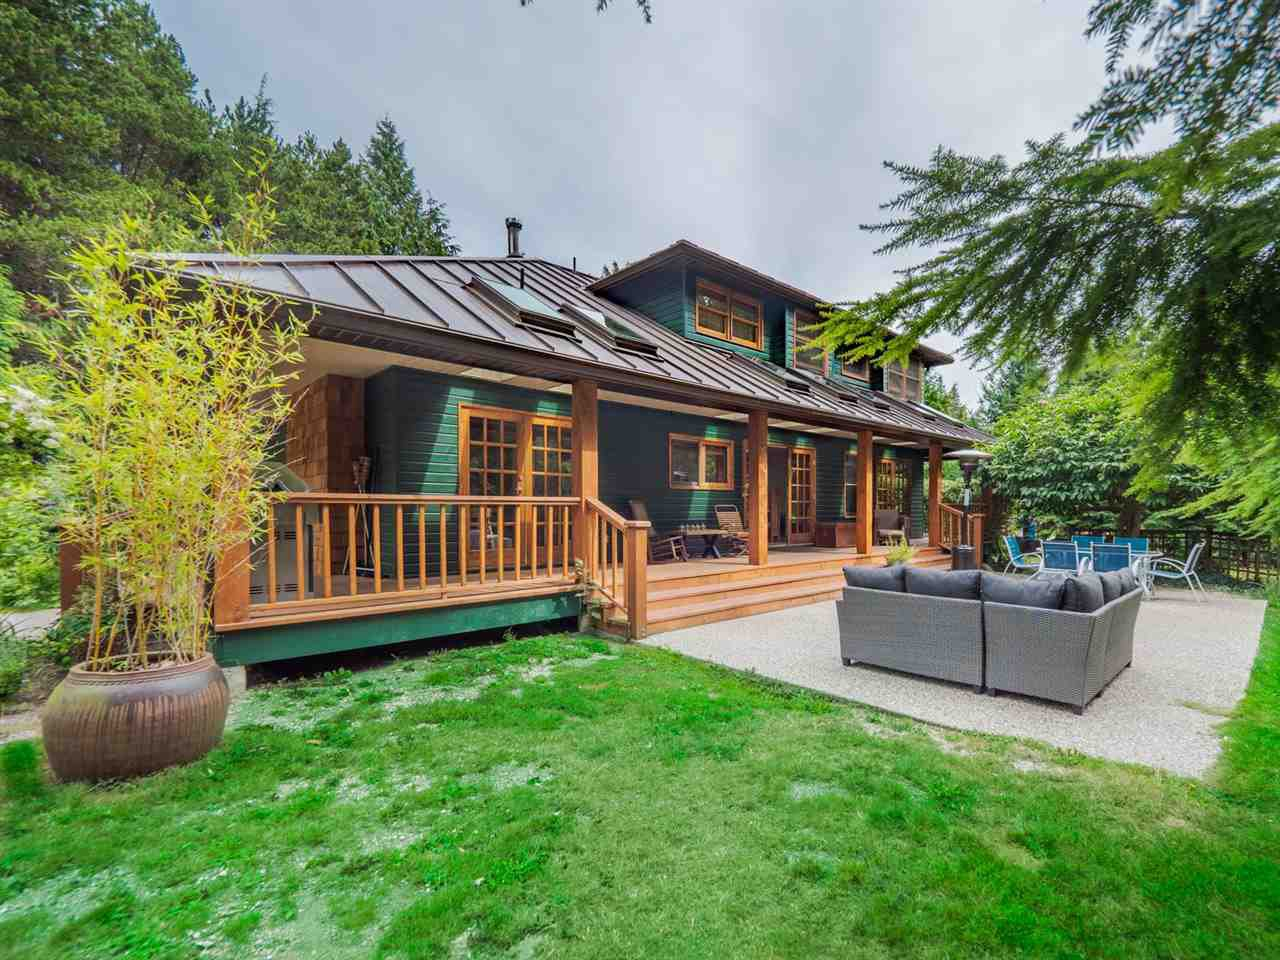 Main Photo: 7983 LOHN Road in Halfmoon Bay: Halfmn Bay Secret Cv Redroofs House for sale (Sunshine Coast)  : MLS®# R2398983